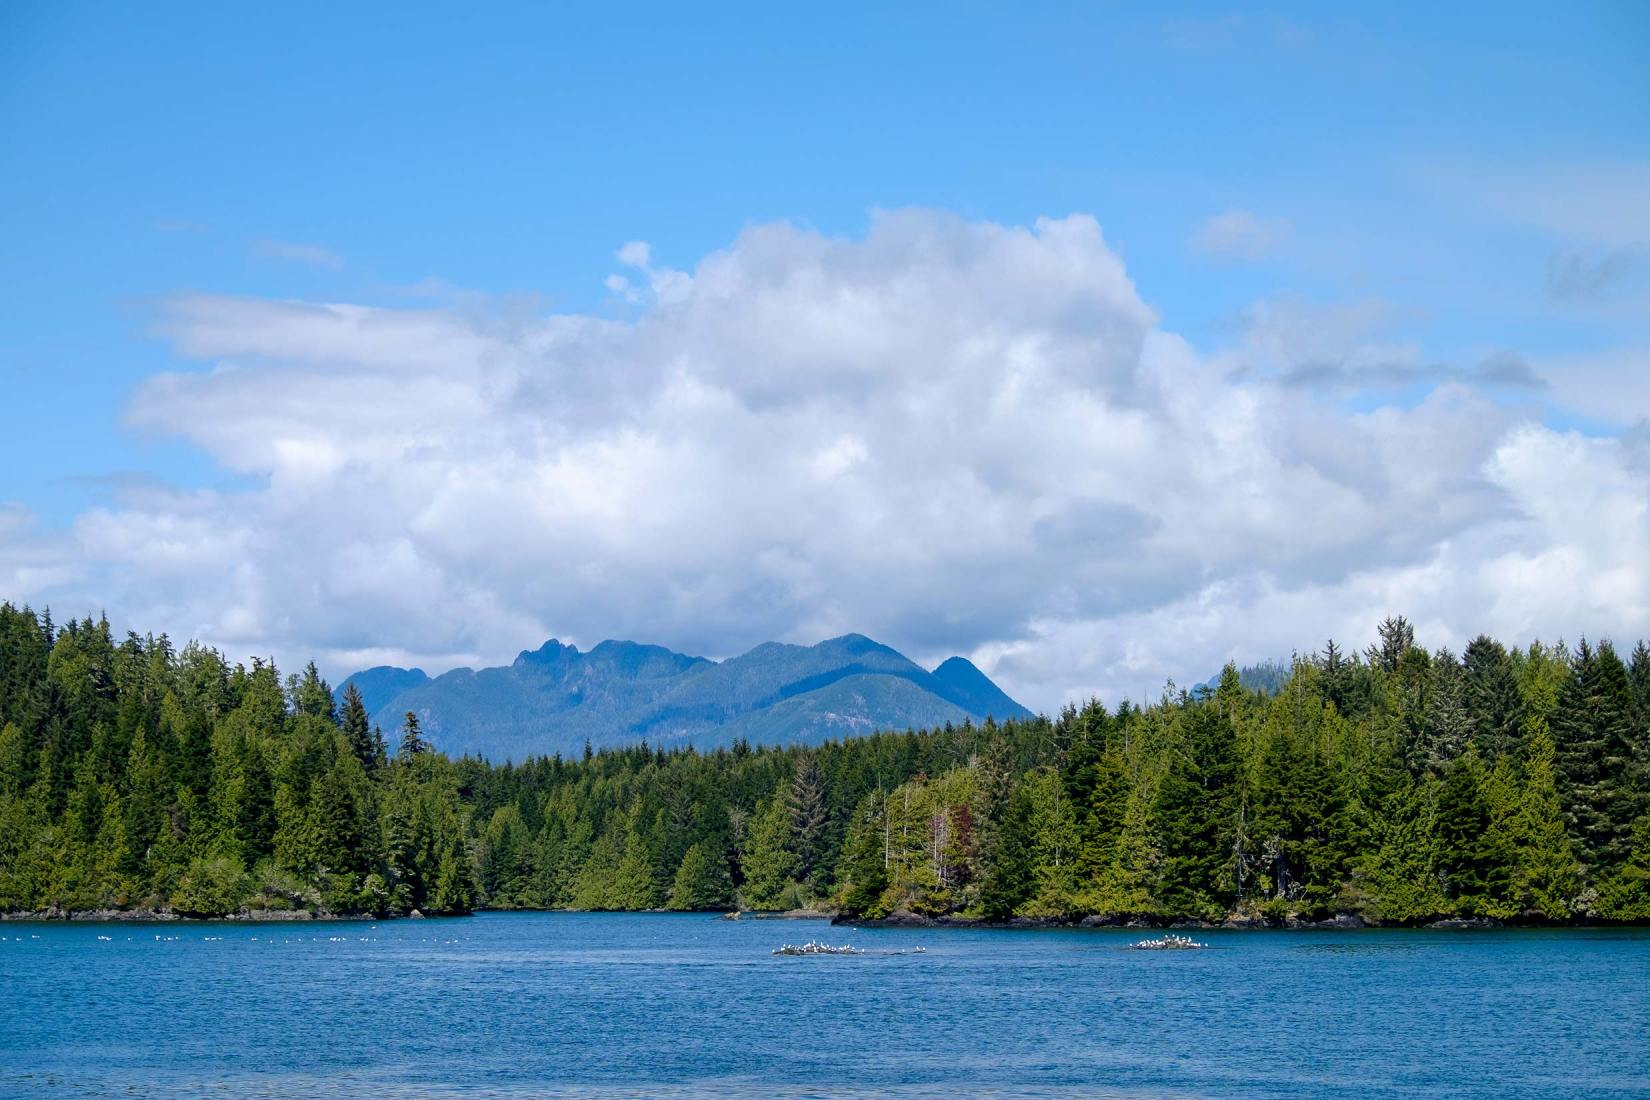 PWS015-0678-Sharon-Blance-photographer-Tofino-travel-editorial-landscape-water-trees